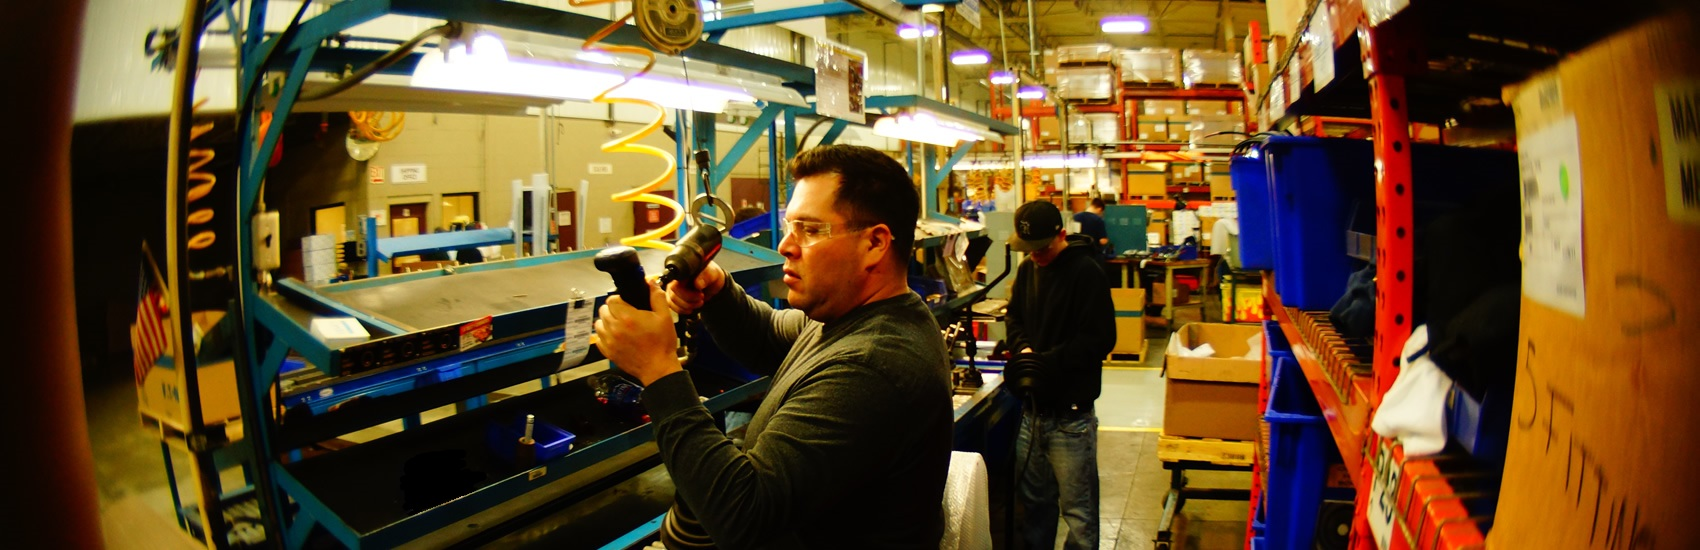 manufactiring-and-assembly-macomb-county-1